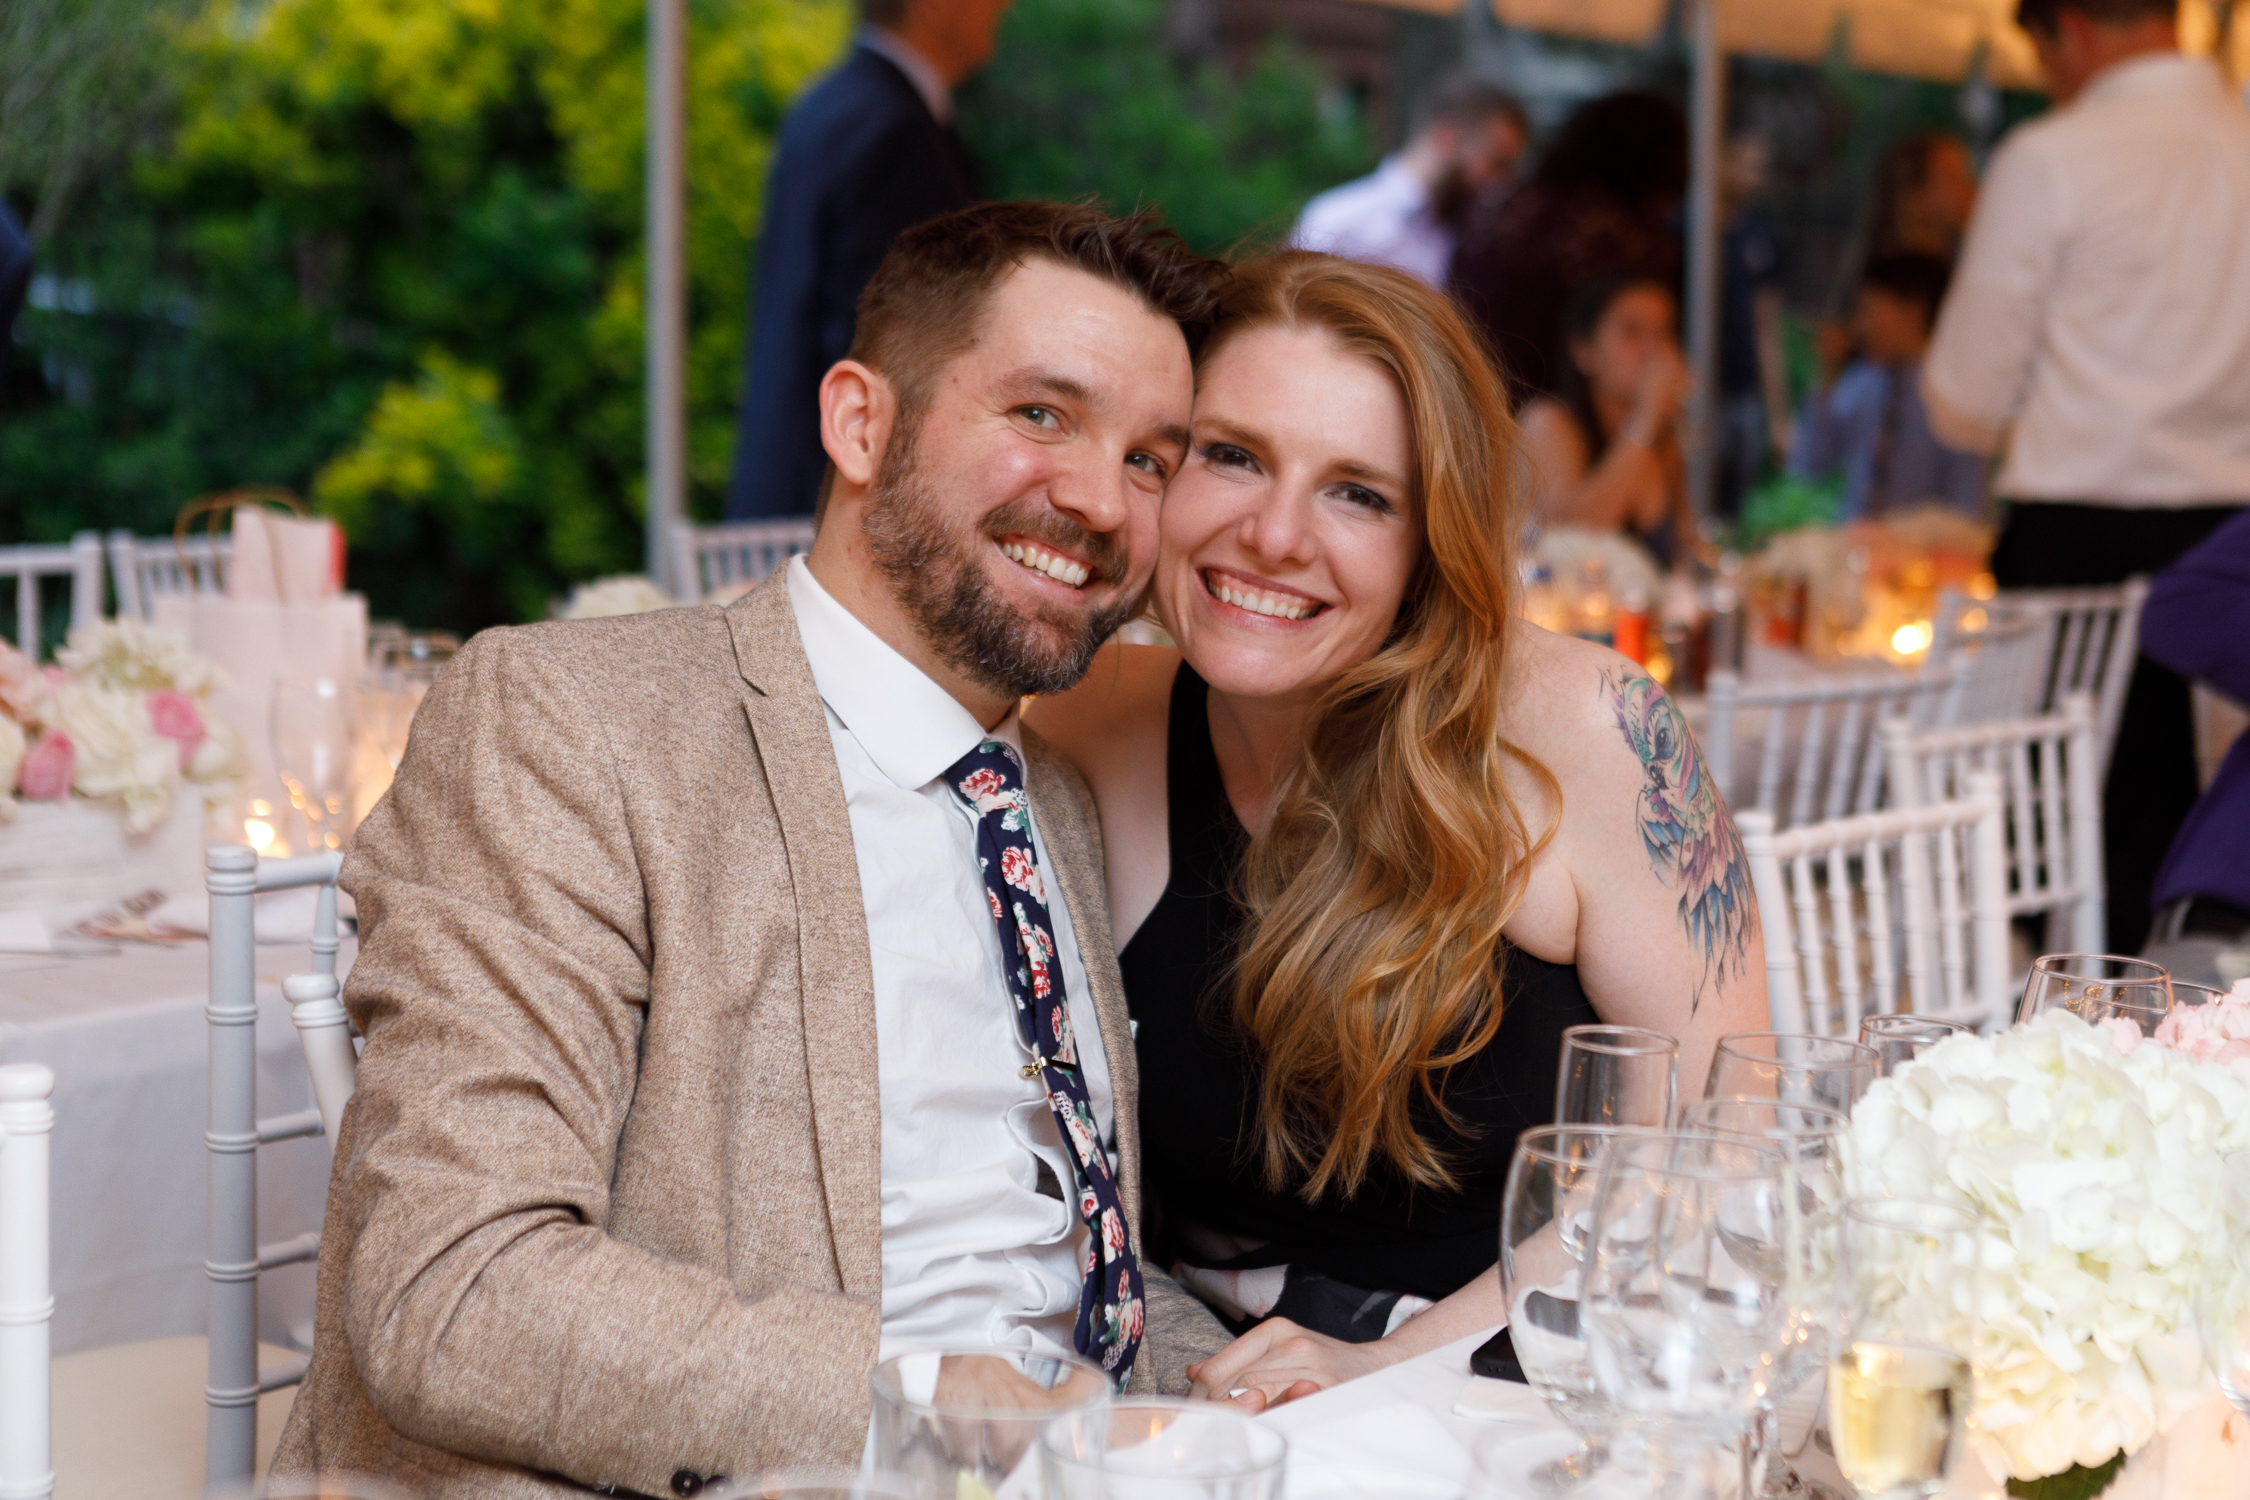 Brooklyn Wedding Photographer _ Jonathan Heisler _ 5112019 _032.jpg